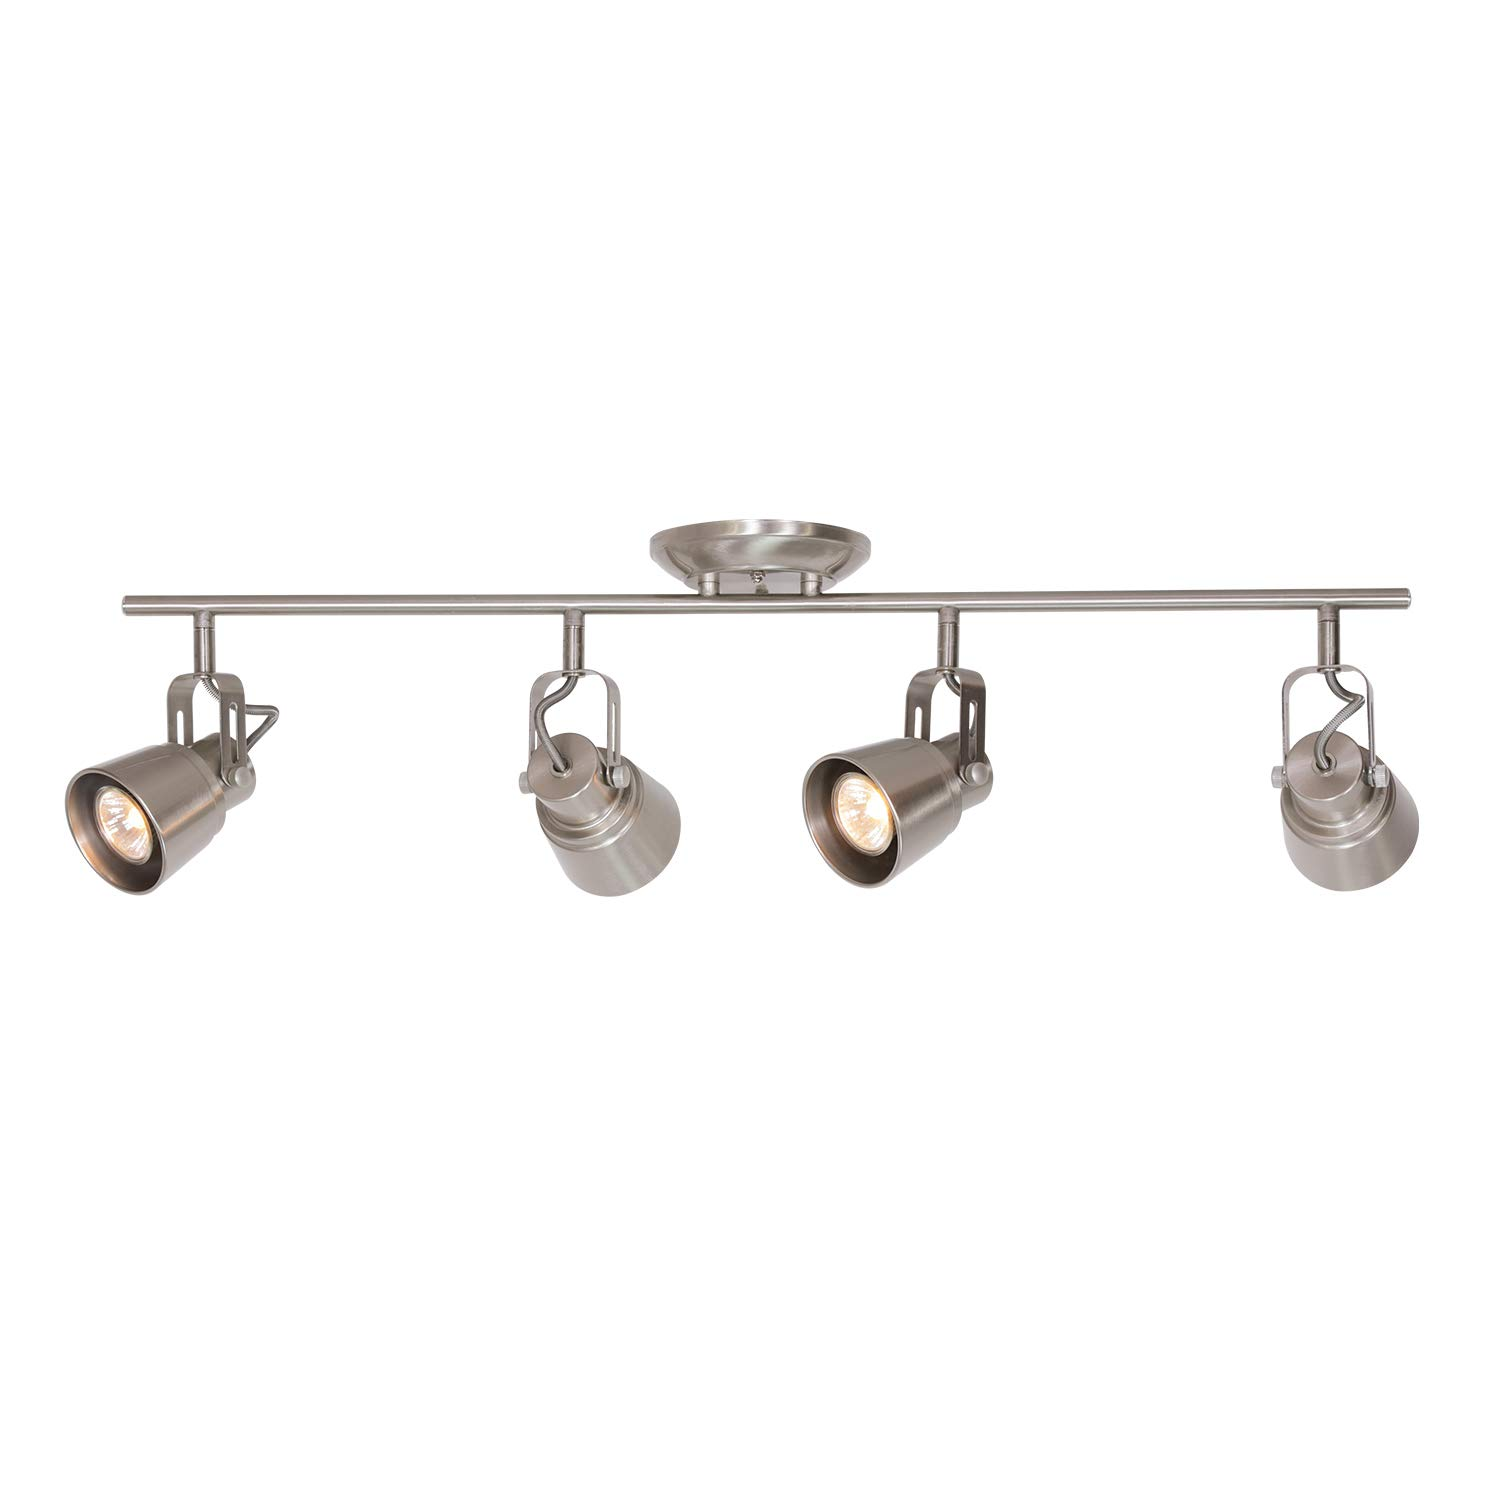 MELUCEE 4 Lights Ceiling Track Lighting Kit, Brushed Nickel Ceiling Spotlights Kitchen Track Lighting Fixtures Ceiling Wall Track Light Picture Lighting, 35W GU10 Base Halogen Bulbs Included